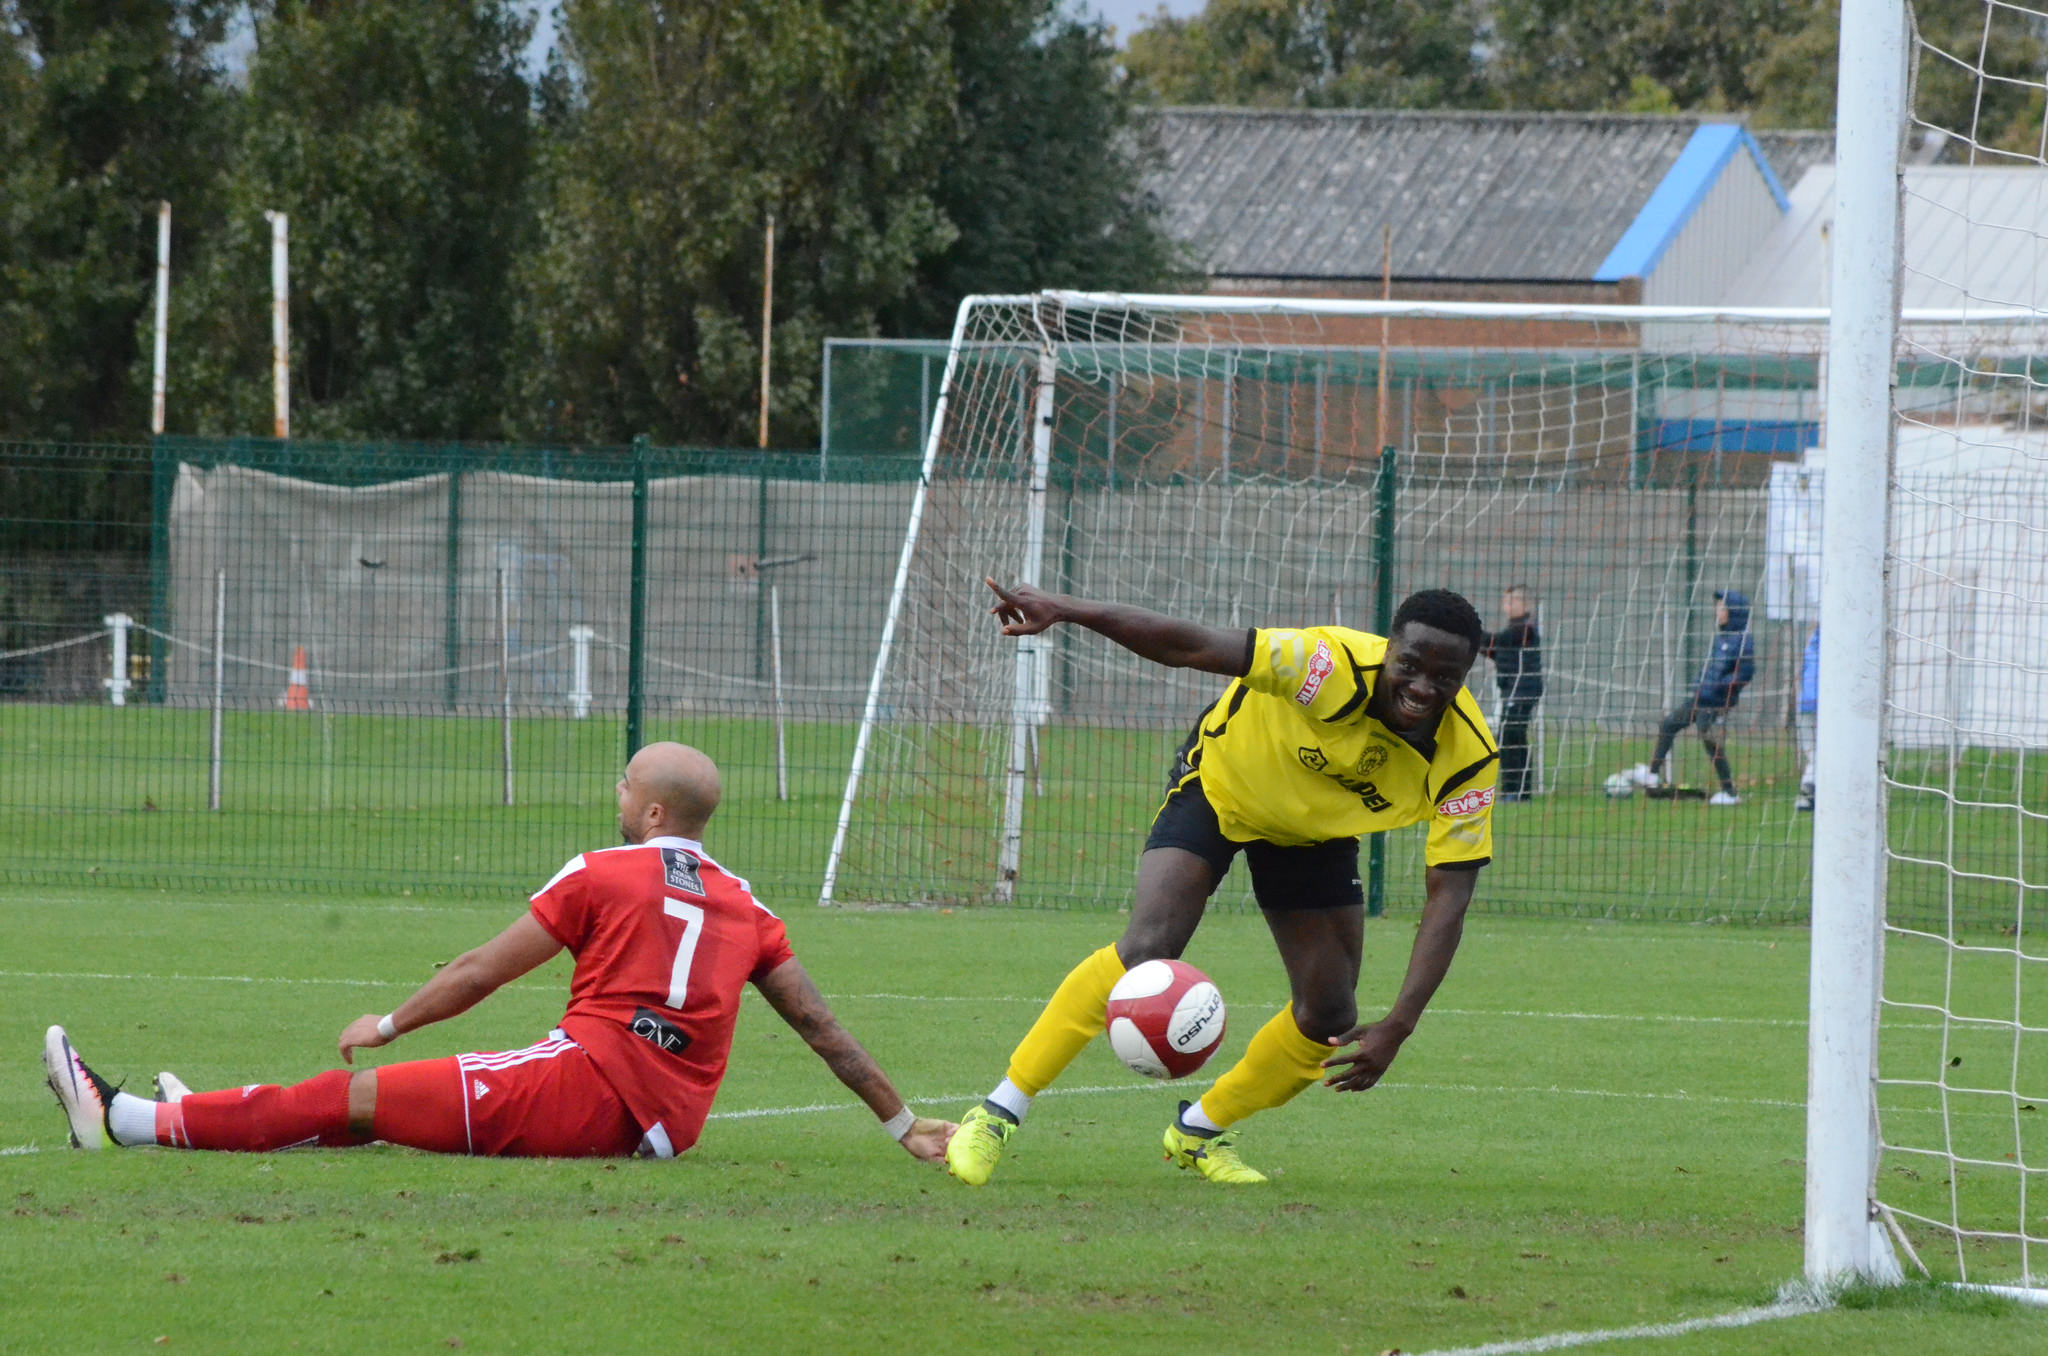 Dan Udoh celebrates his goal against Stourbridge. Photo by CRH Photography